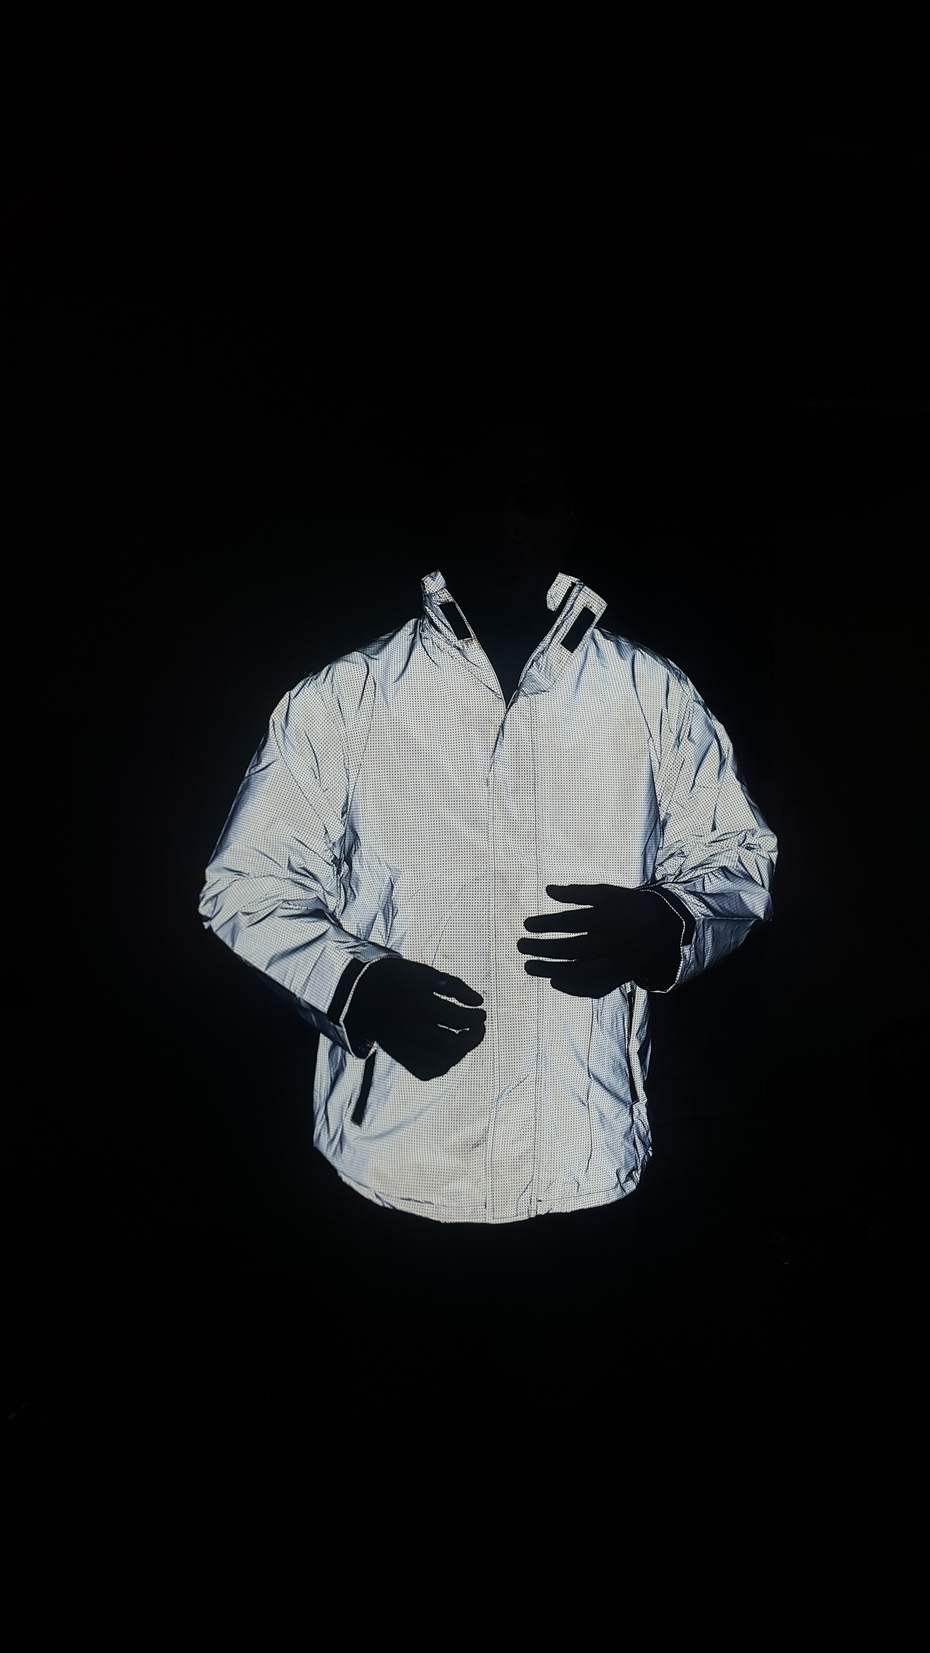 Reflective jacket under mobile flash